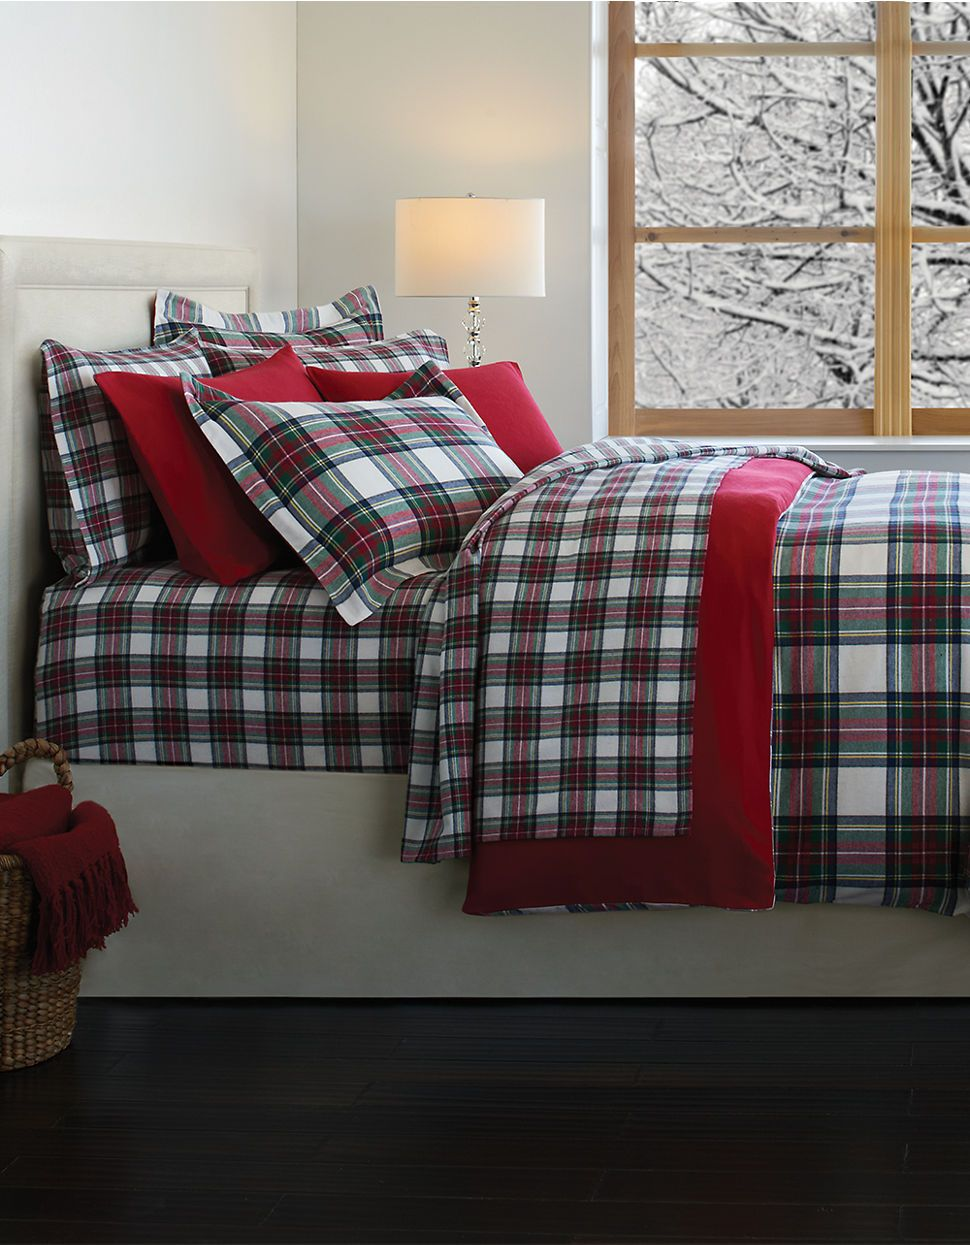 Distinctly Home Stewart Plaid Flannel Duvet Cover Made In Portugal Hudson S Bay Plaid Bedding Christmas Bedroom Home Decor